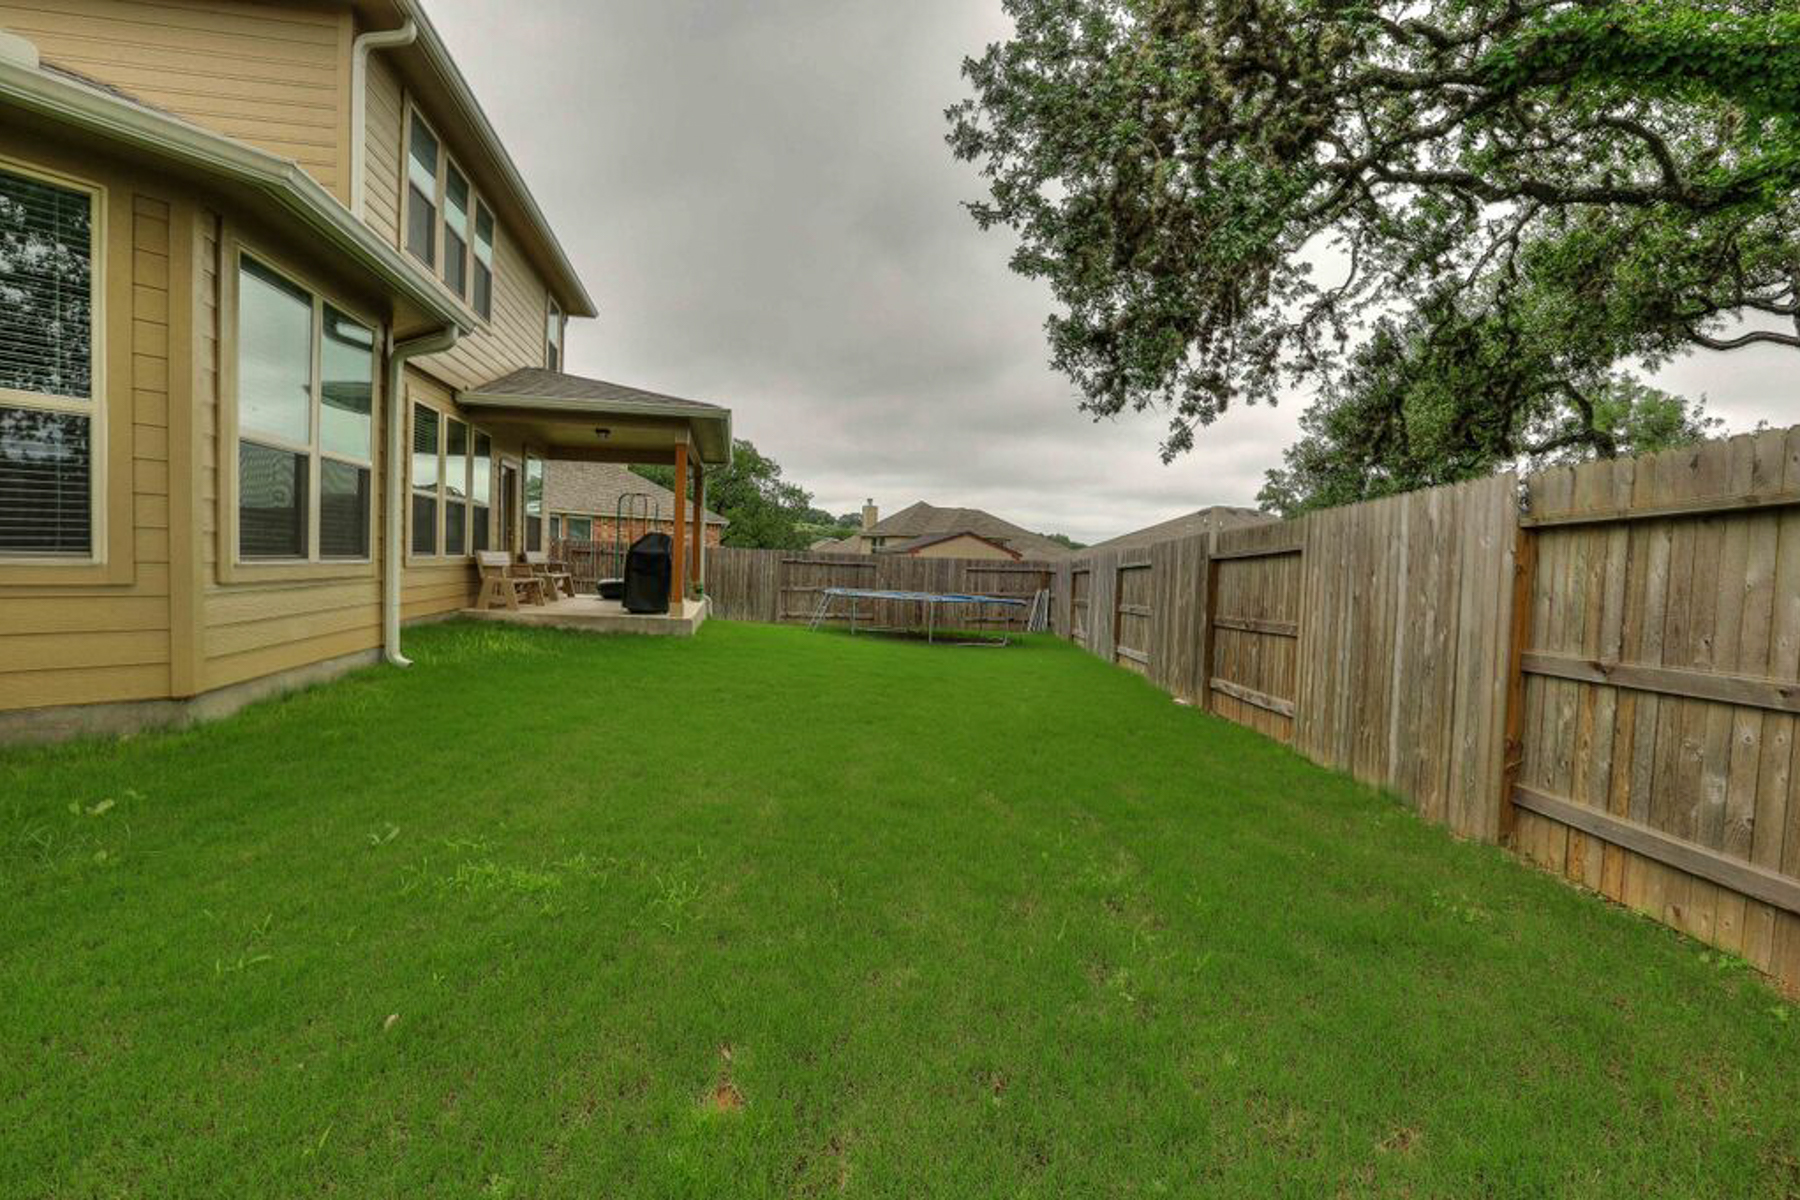 Additional photo for property listing at Rental in Sesirable Woods of Frederick Creek 109 Windsor Dr Boerne, Texas 78006 Estados Unidos